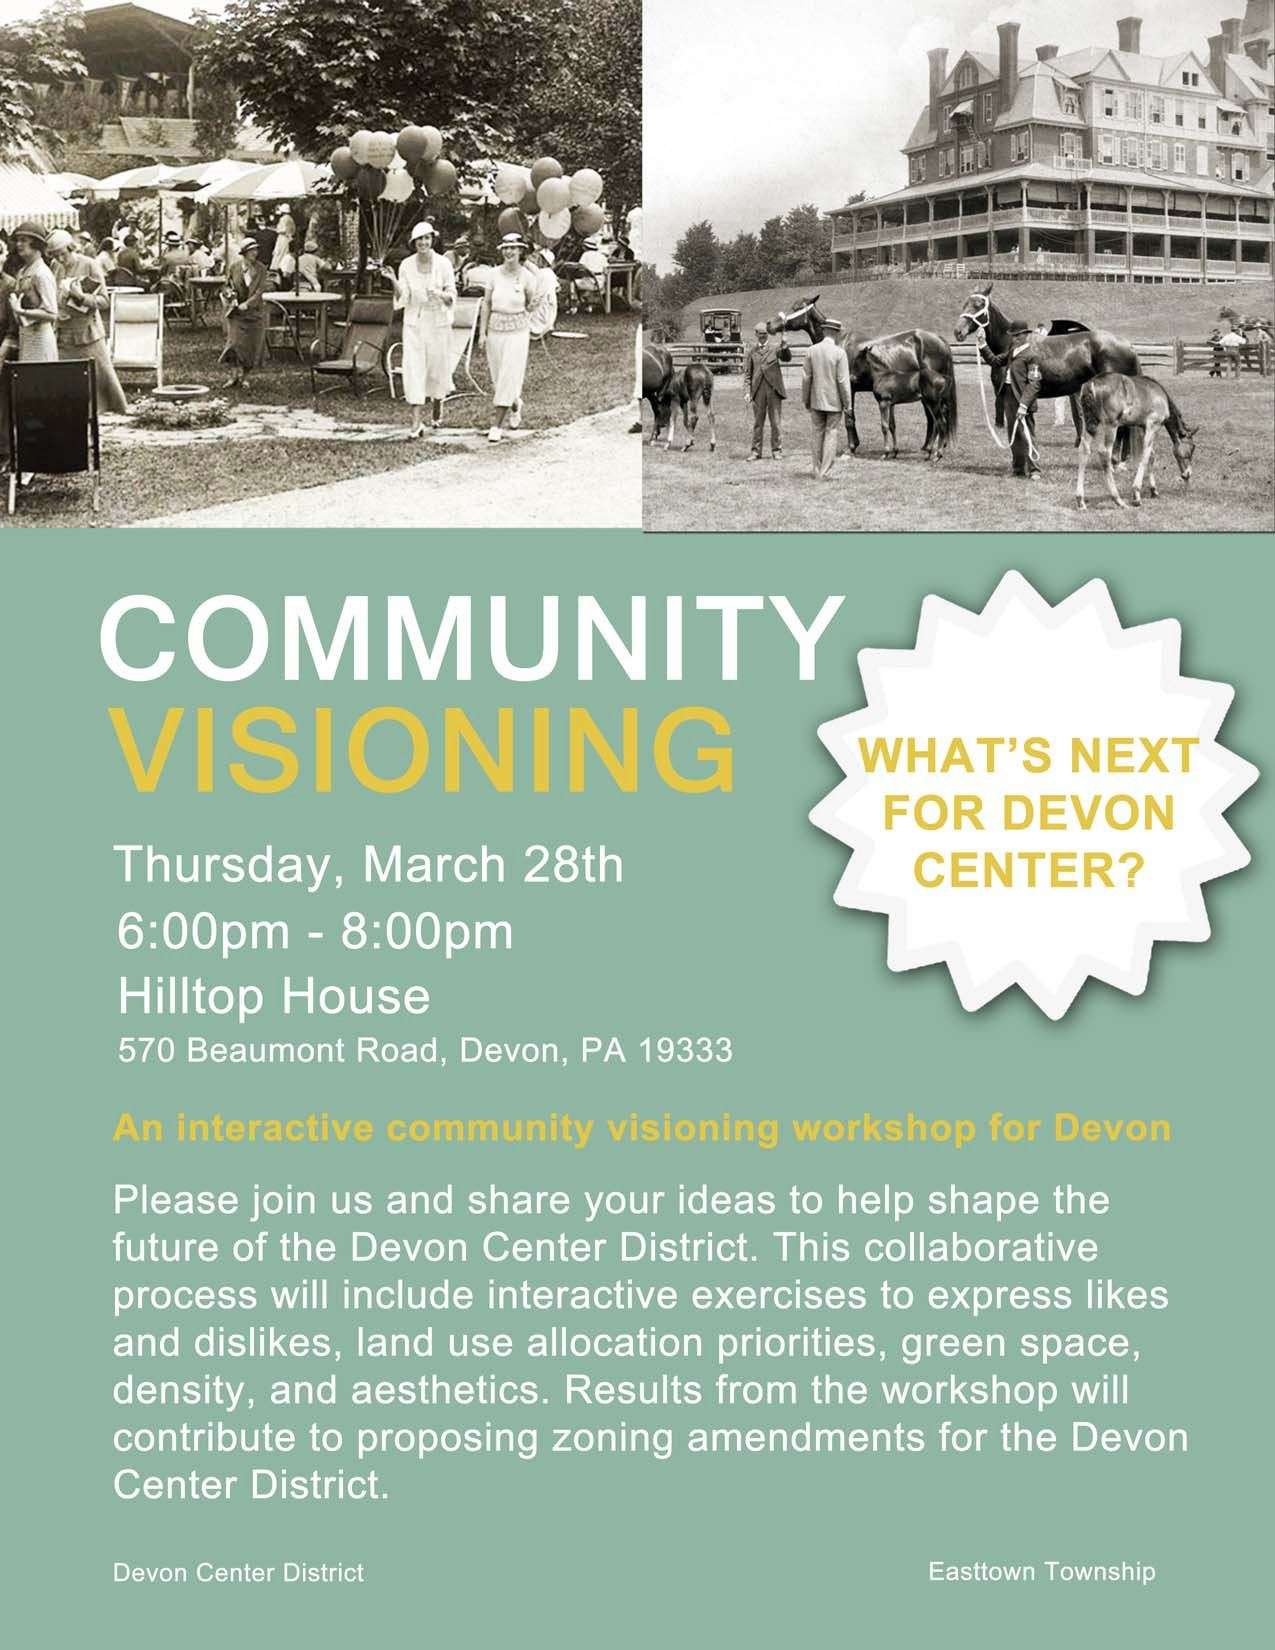 DCTF Community Visioning Workshop Flyer 03.2019